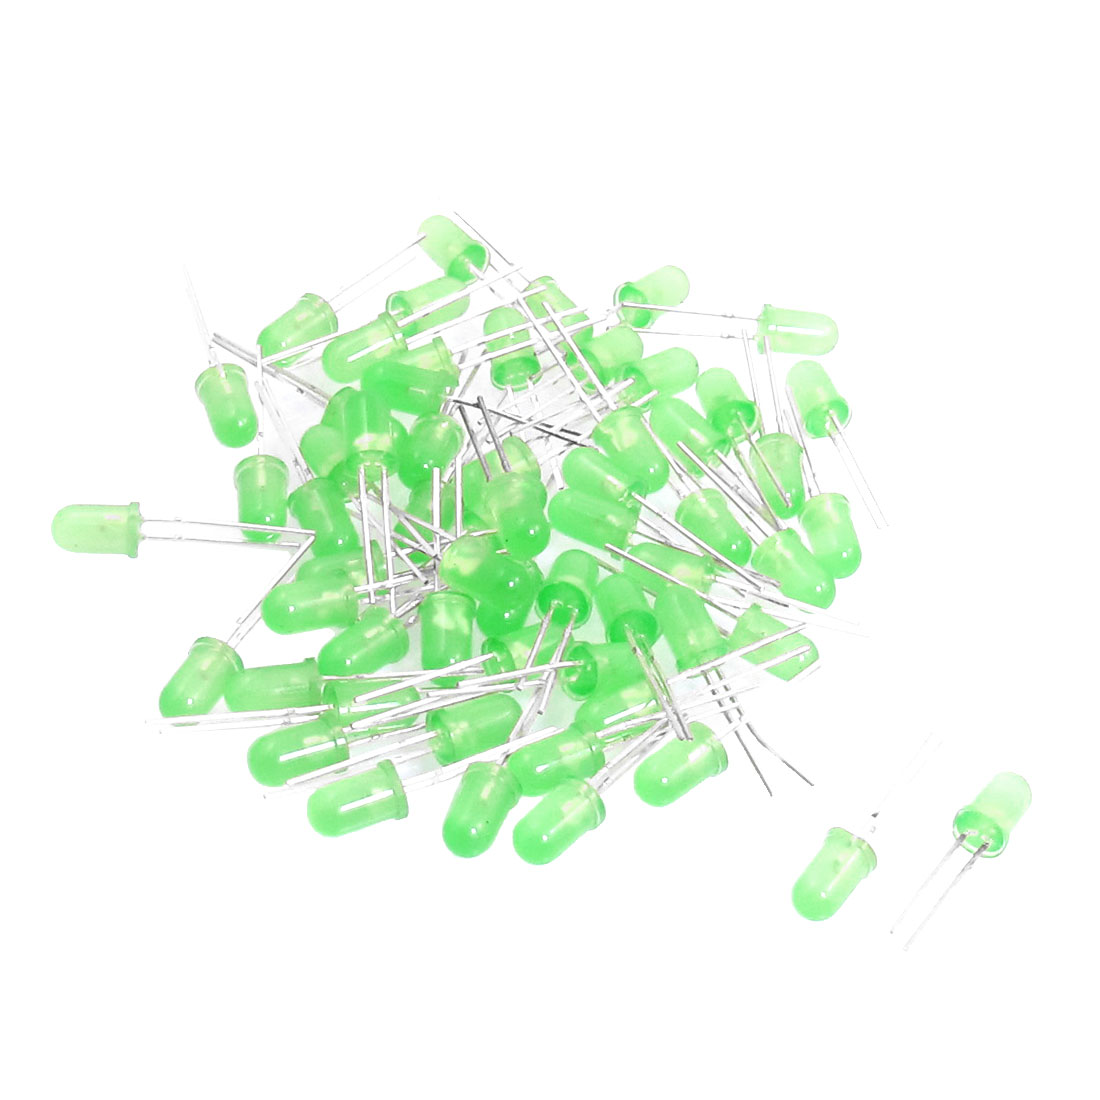 60 Pcs 3V 5mm Round Head Green LED Light Emitting Diodes